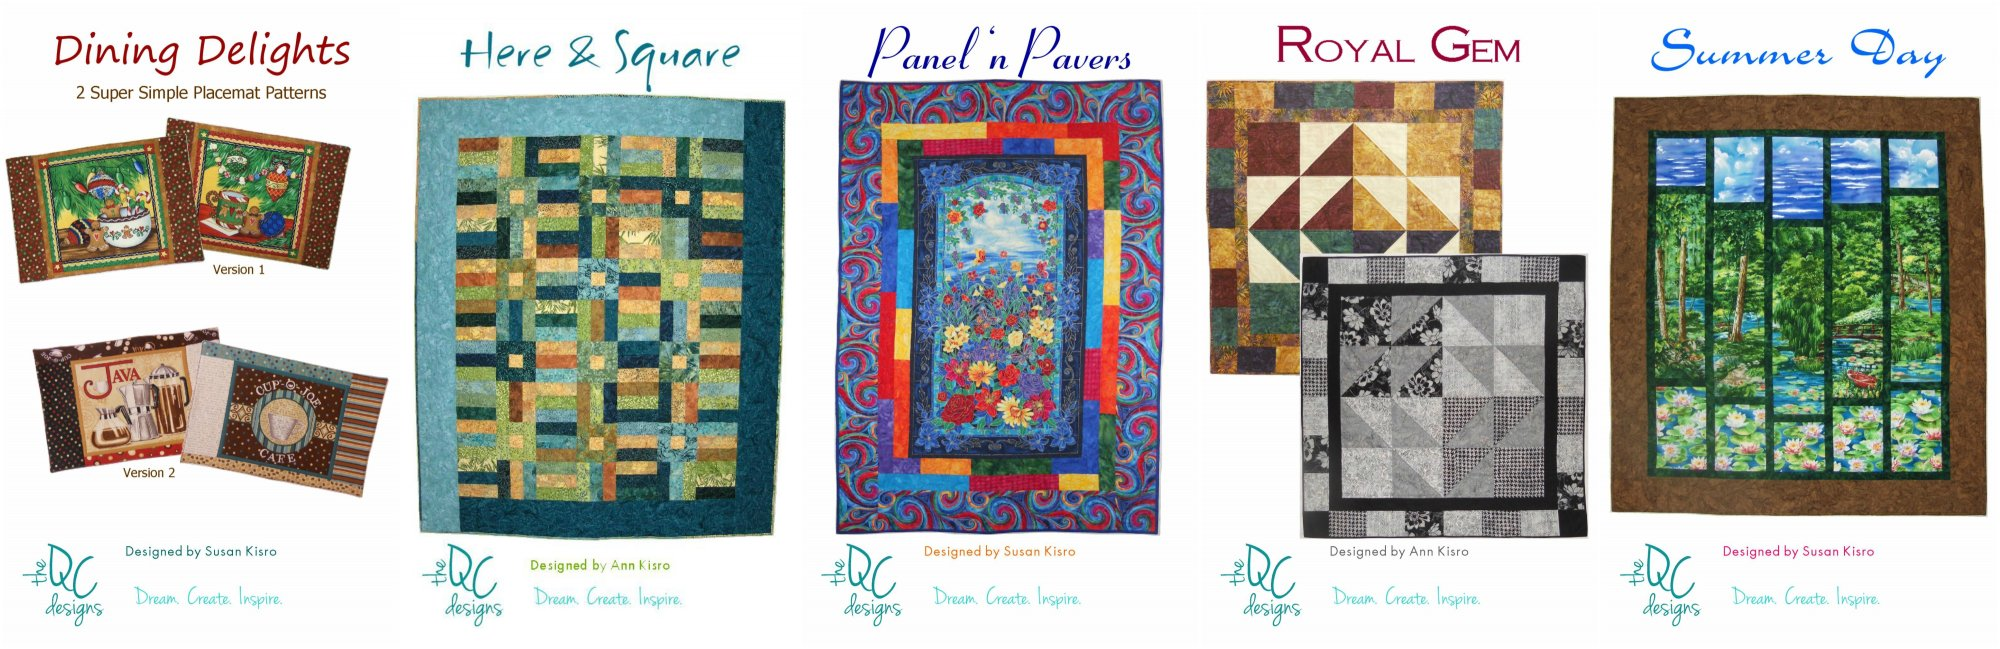 The QC Designs Pattern Pack #1- 66.66% OFF